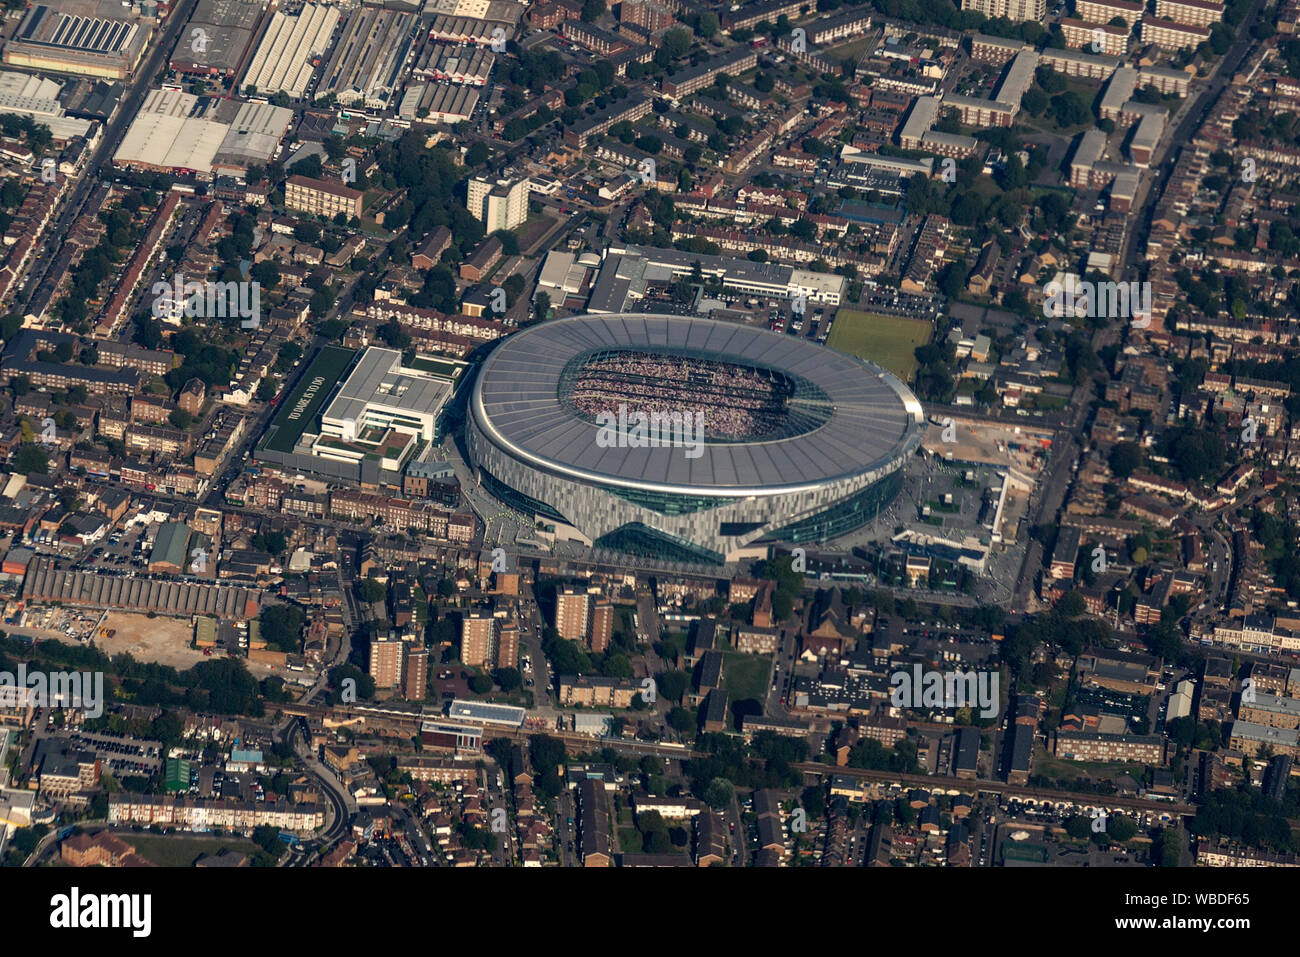 Tottenham Hotspur Stadium Aerial High Resolution Stock Photography And Images Alamy